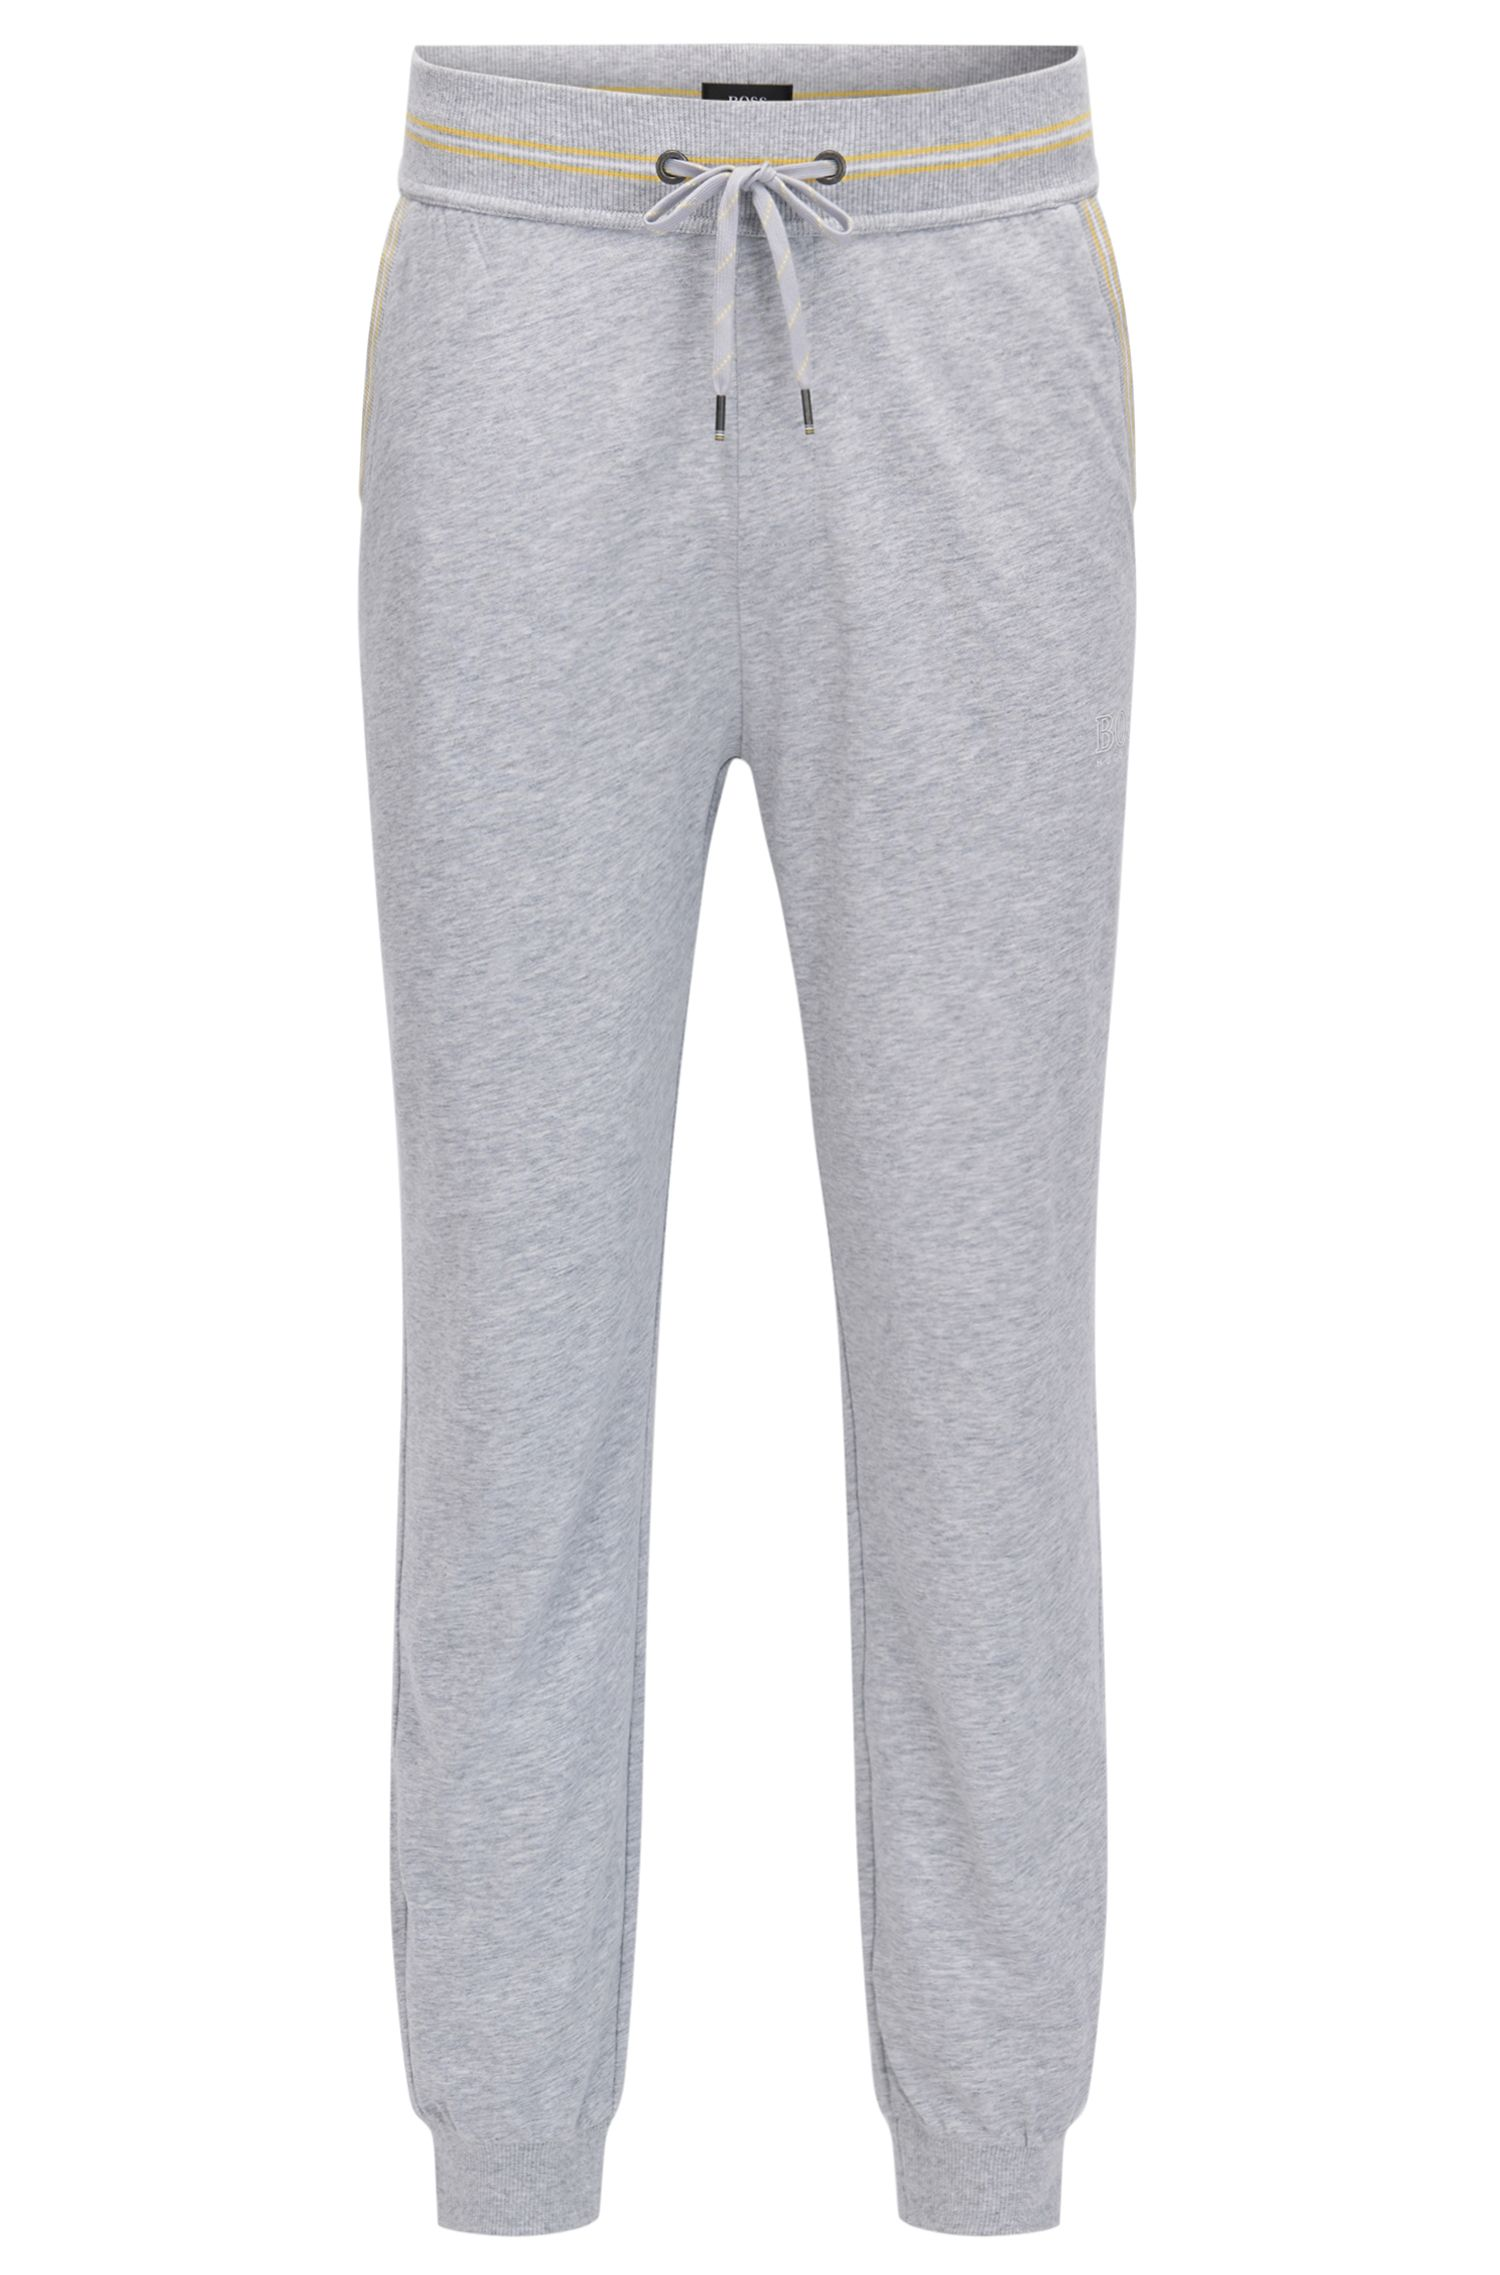 Cuffed loungewear trousers in single-jersey cotton